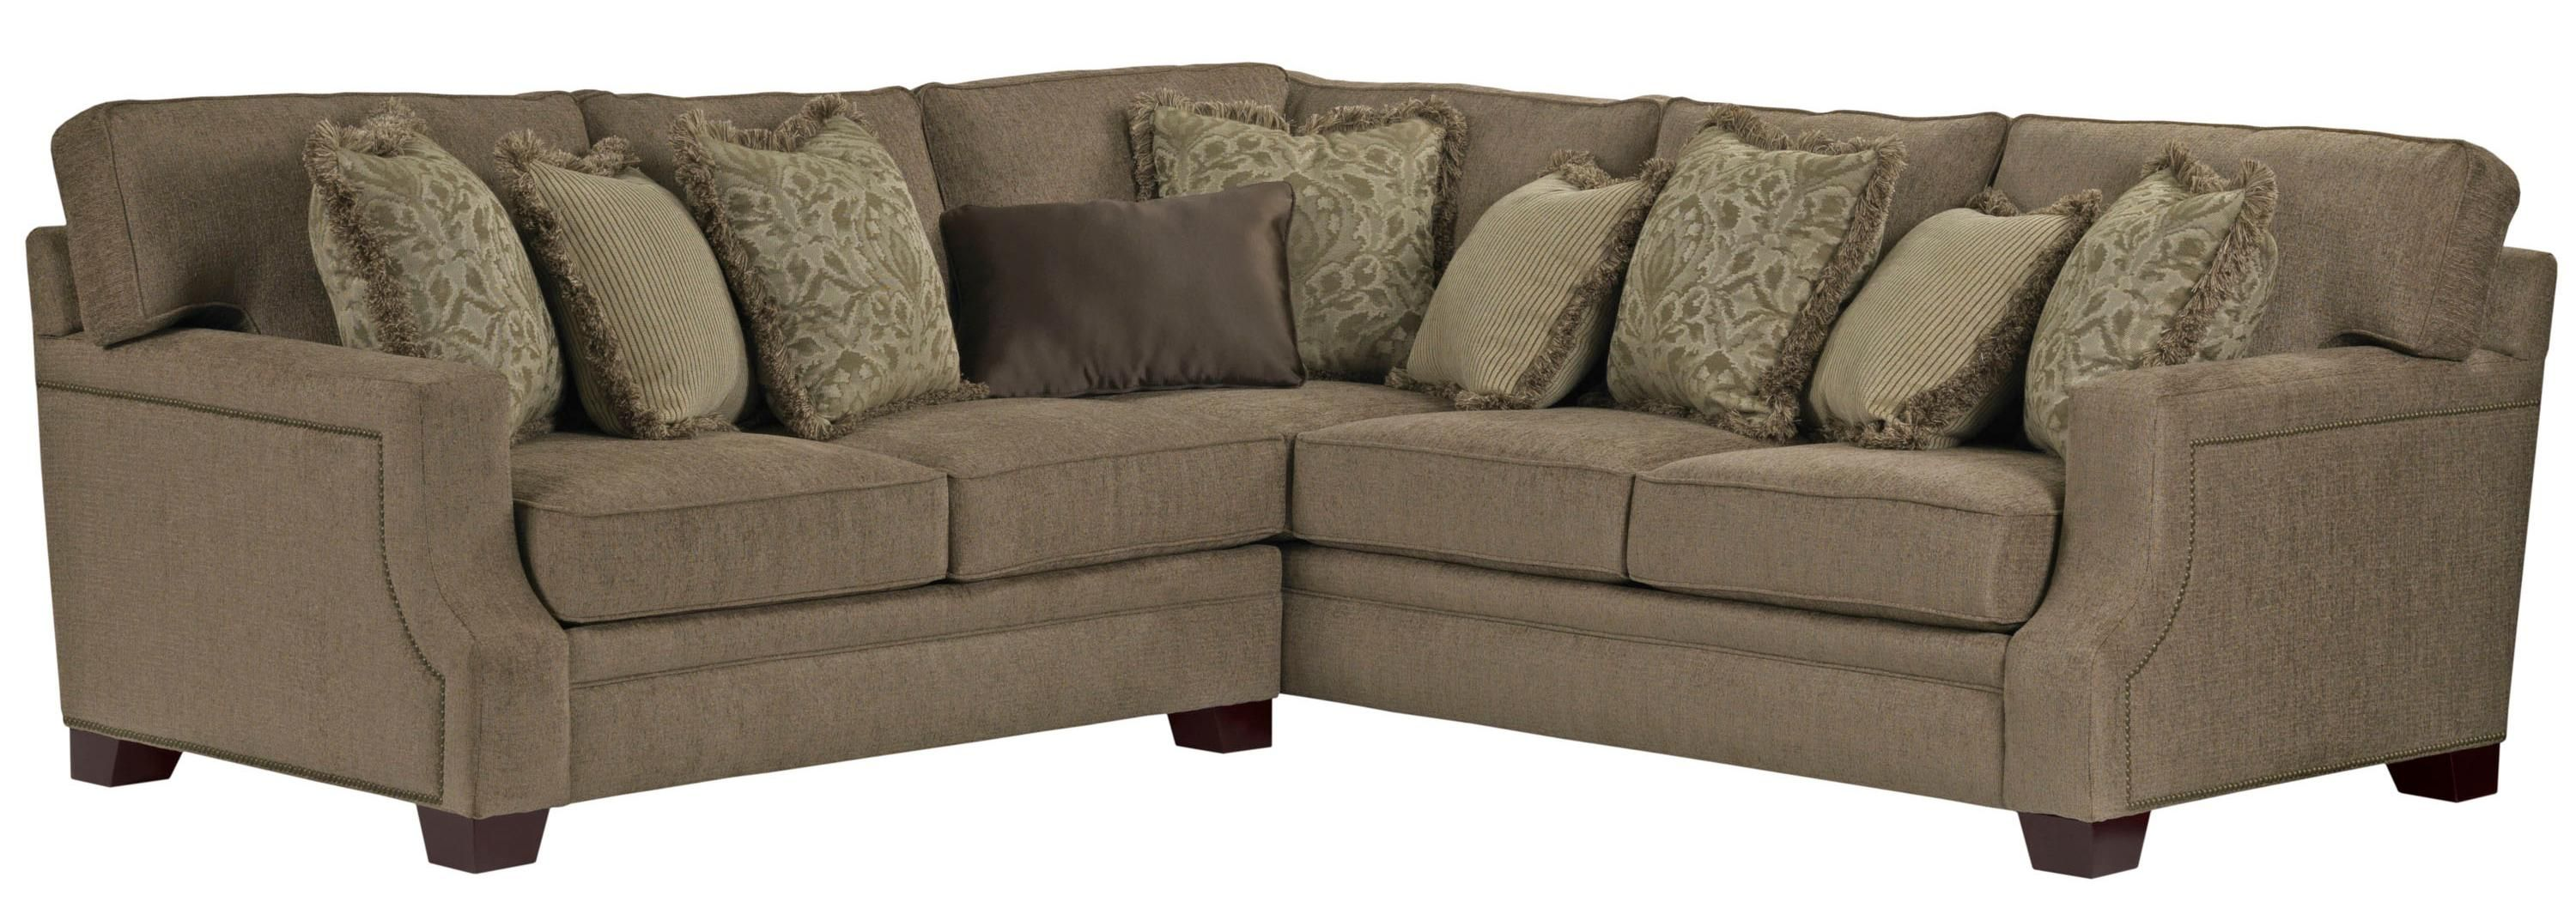 Broyhill Furniture Kayley 2 Piece Corner Sectional Conlin S